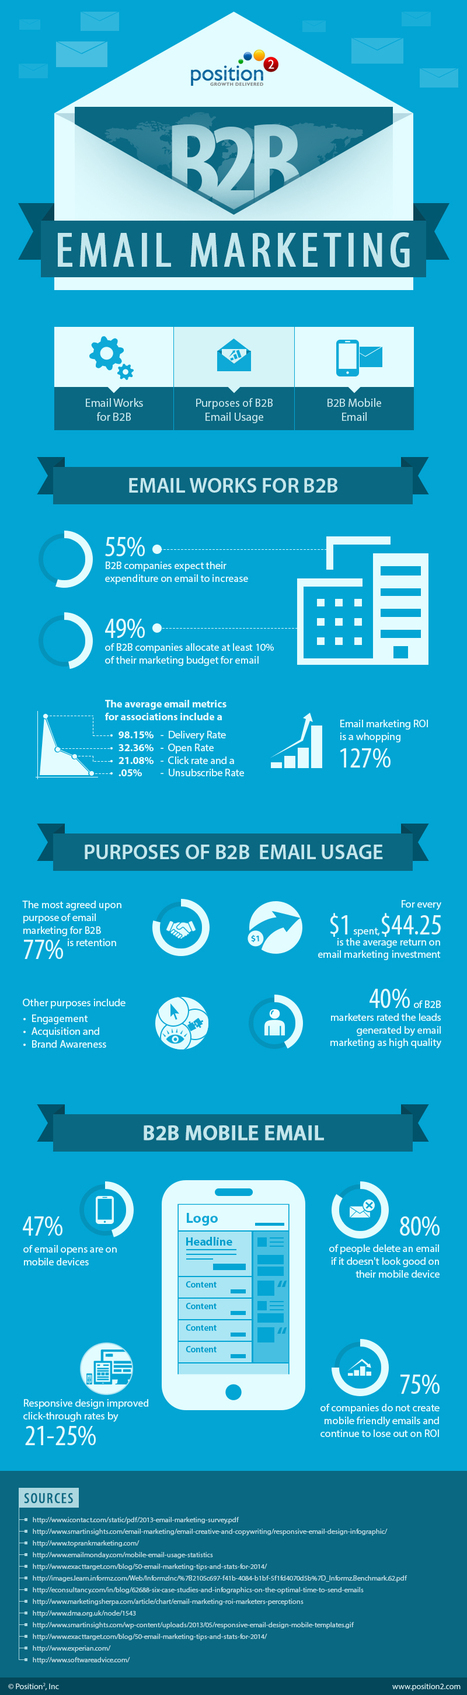 [Infographic] B2B Email Marketing - 2013 Statistics | Position² | #TheMarketingAutomationAlert | On Marketing | Scoop.it